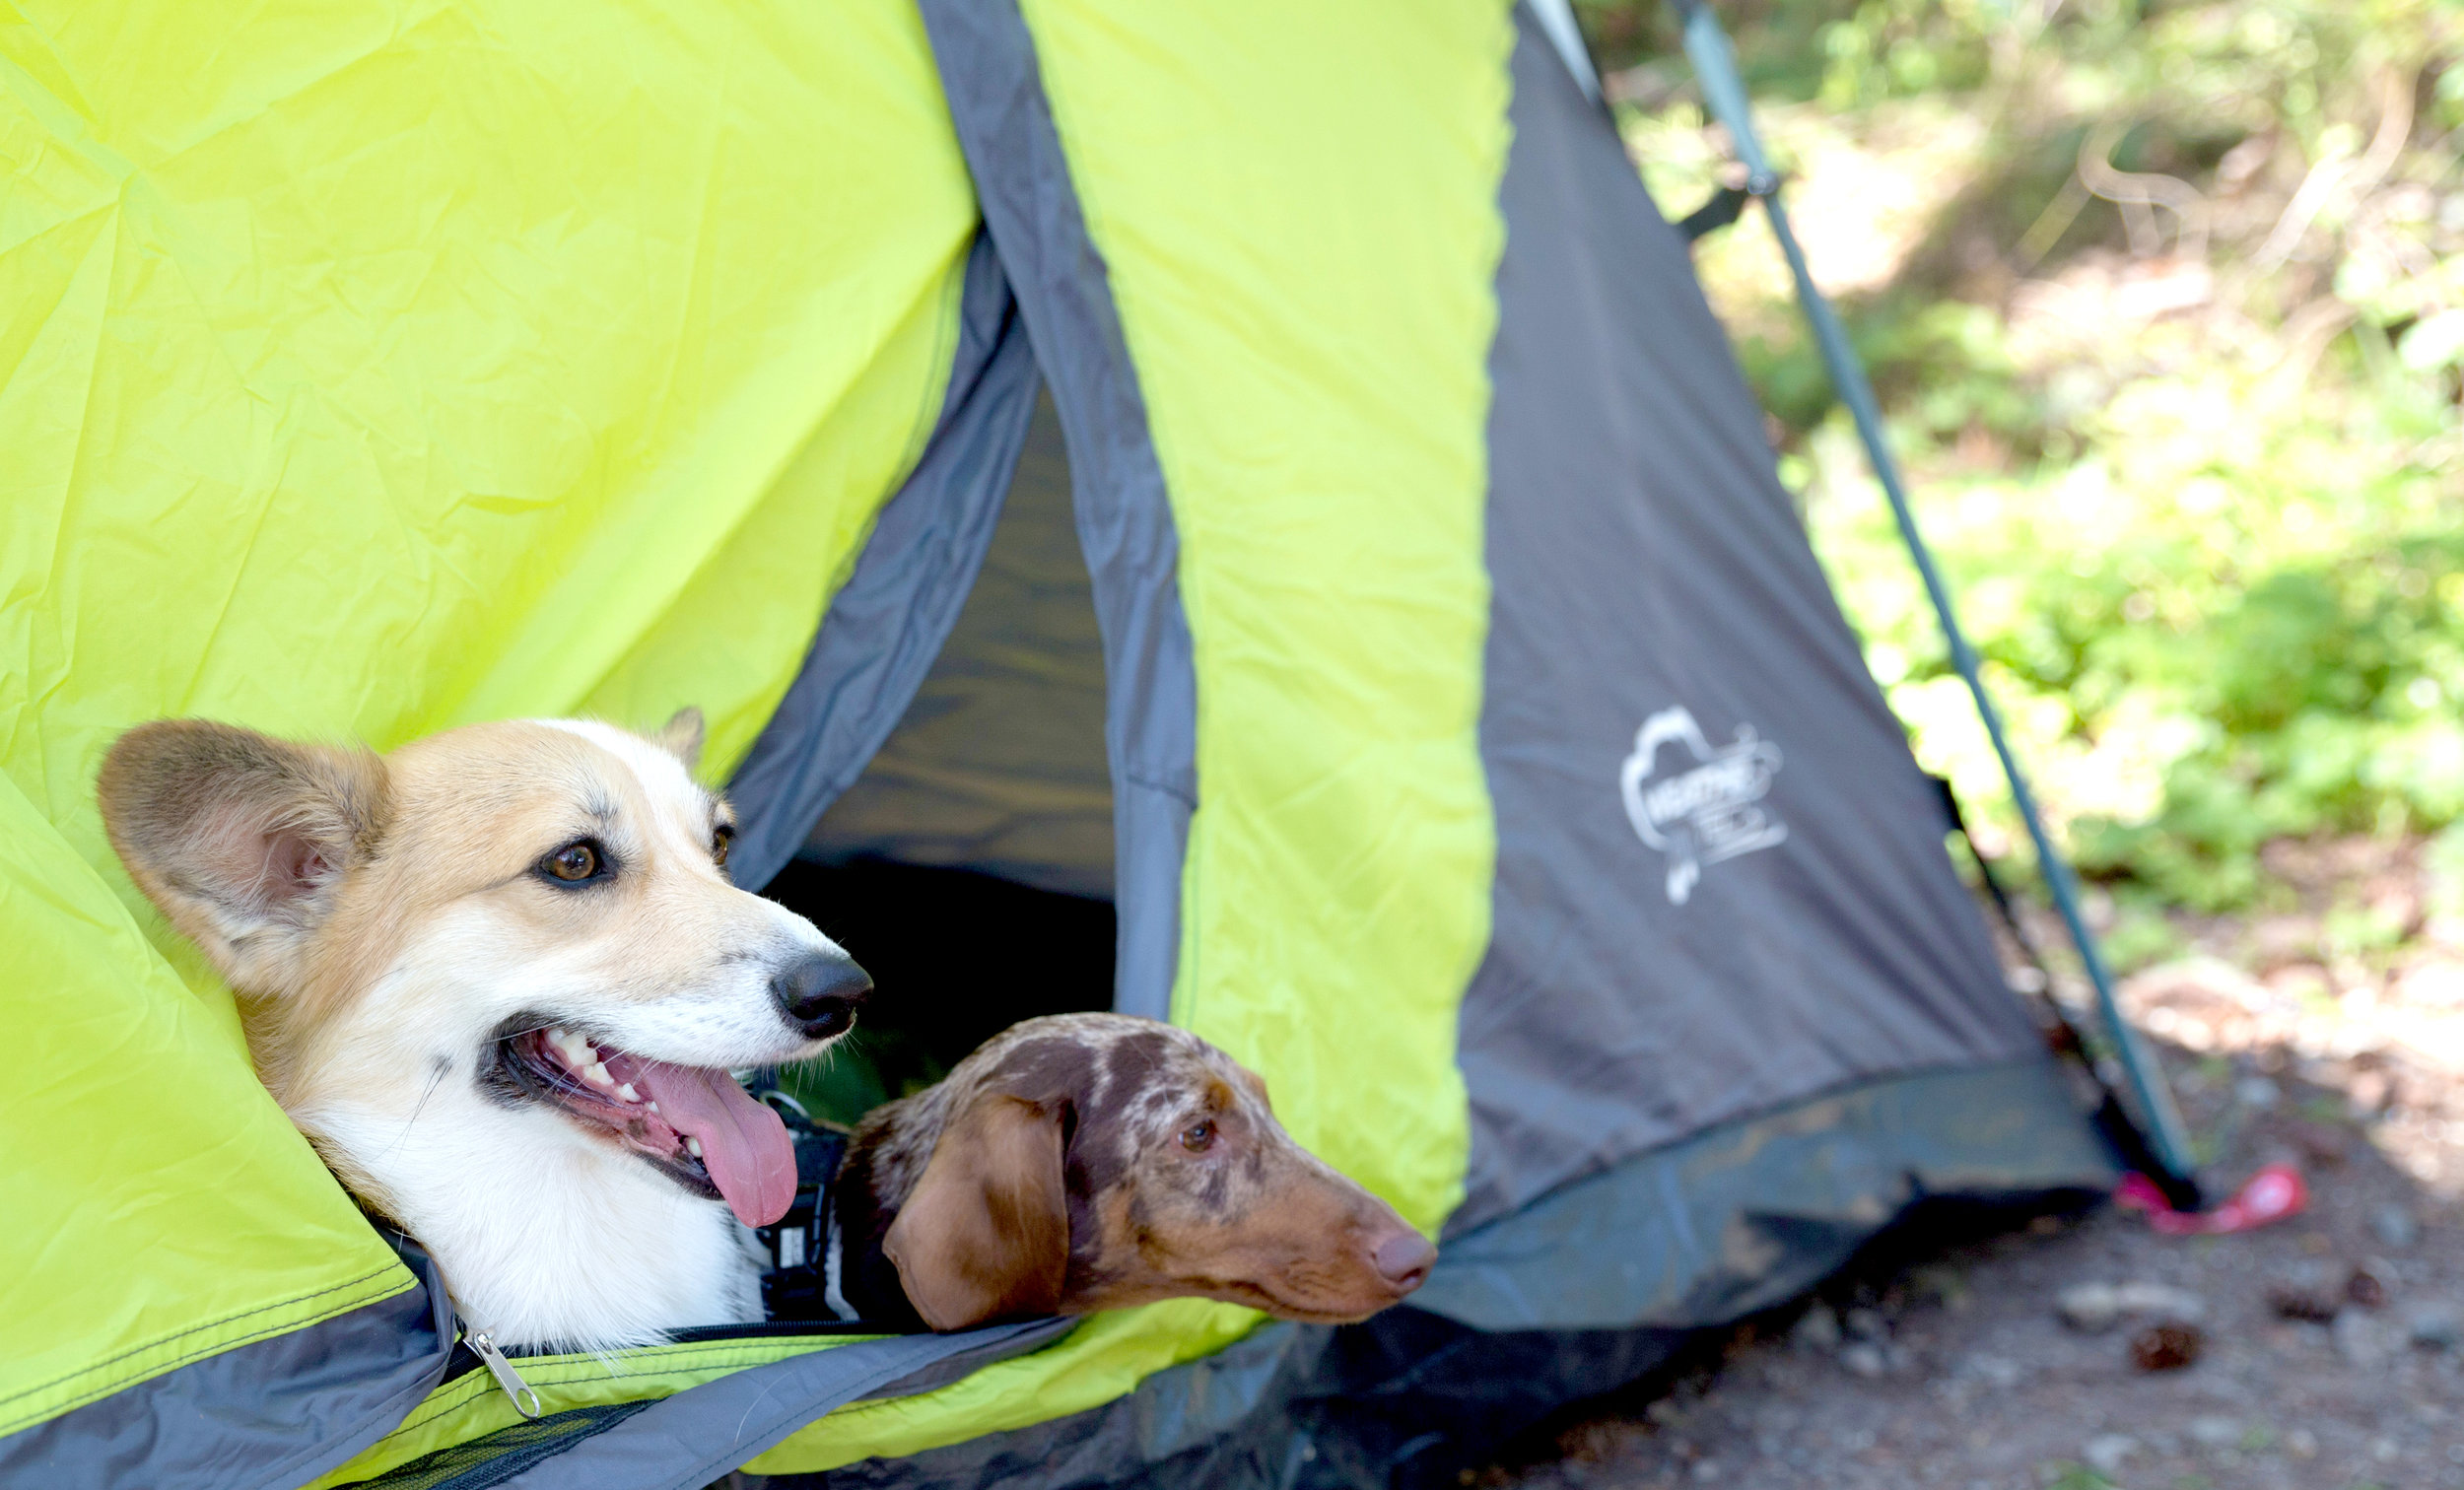 Hanging out in the tent